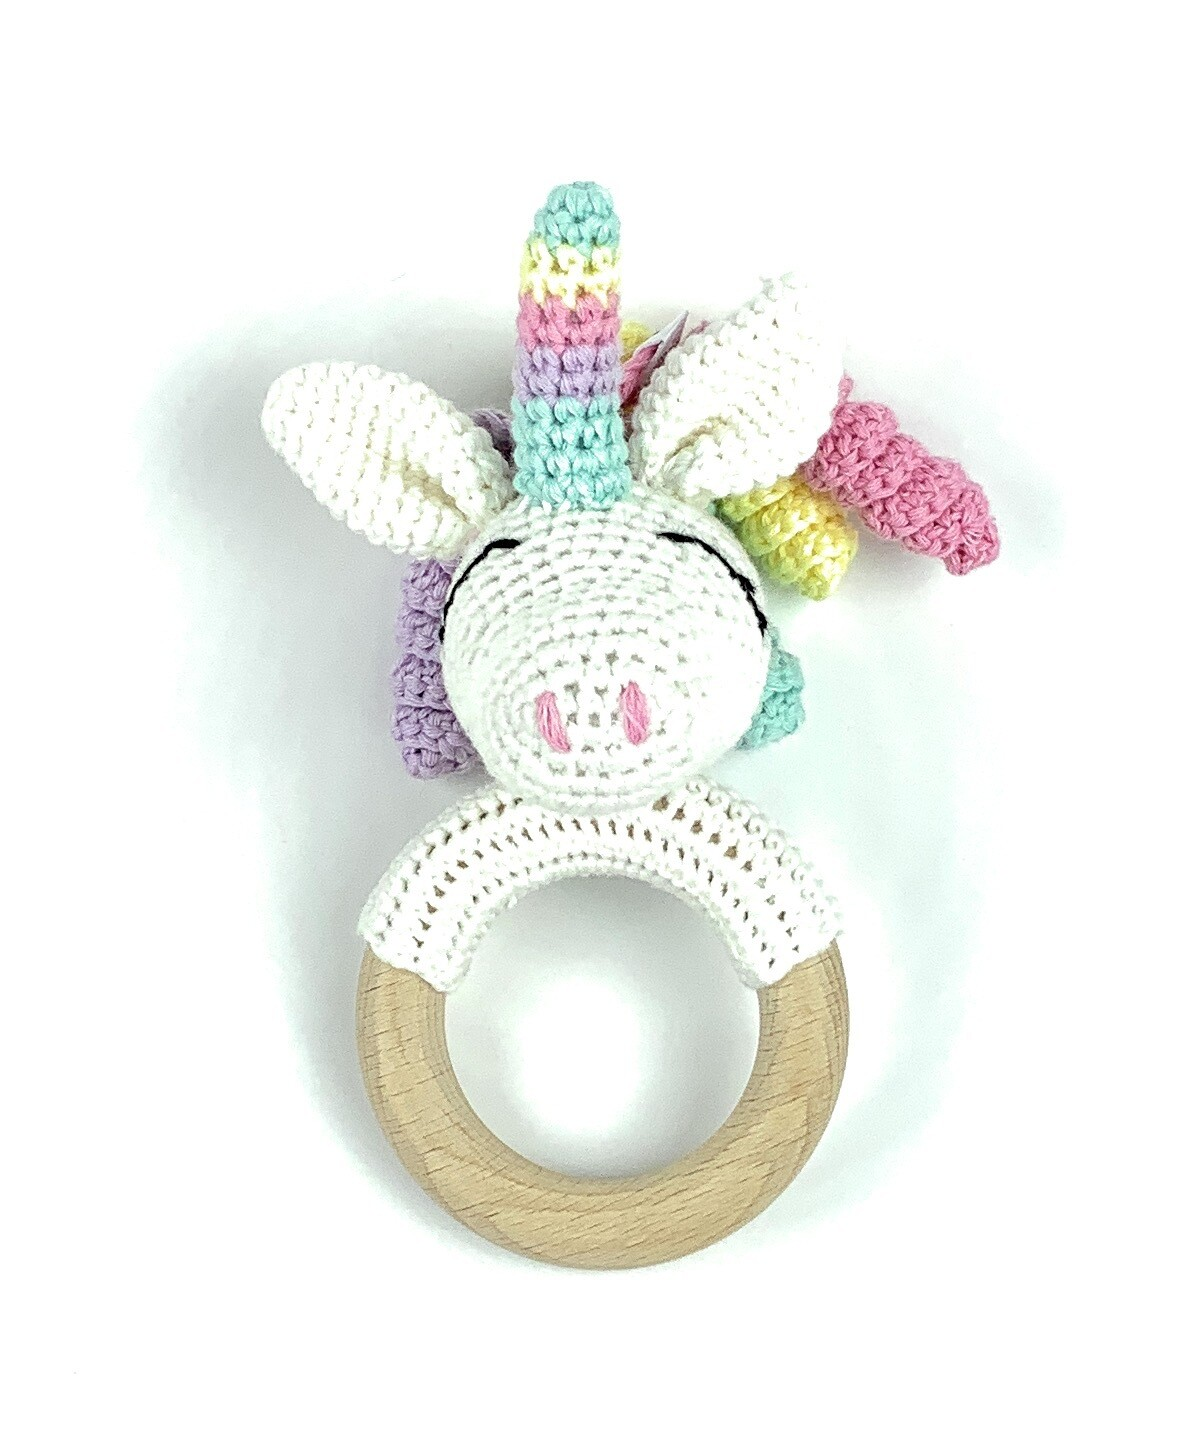 Crochet Teething Ring Rattle - Unicorn